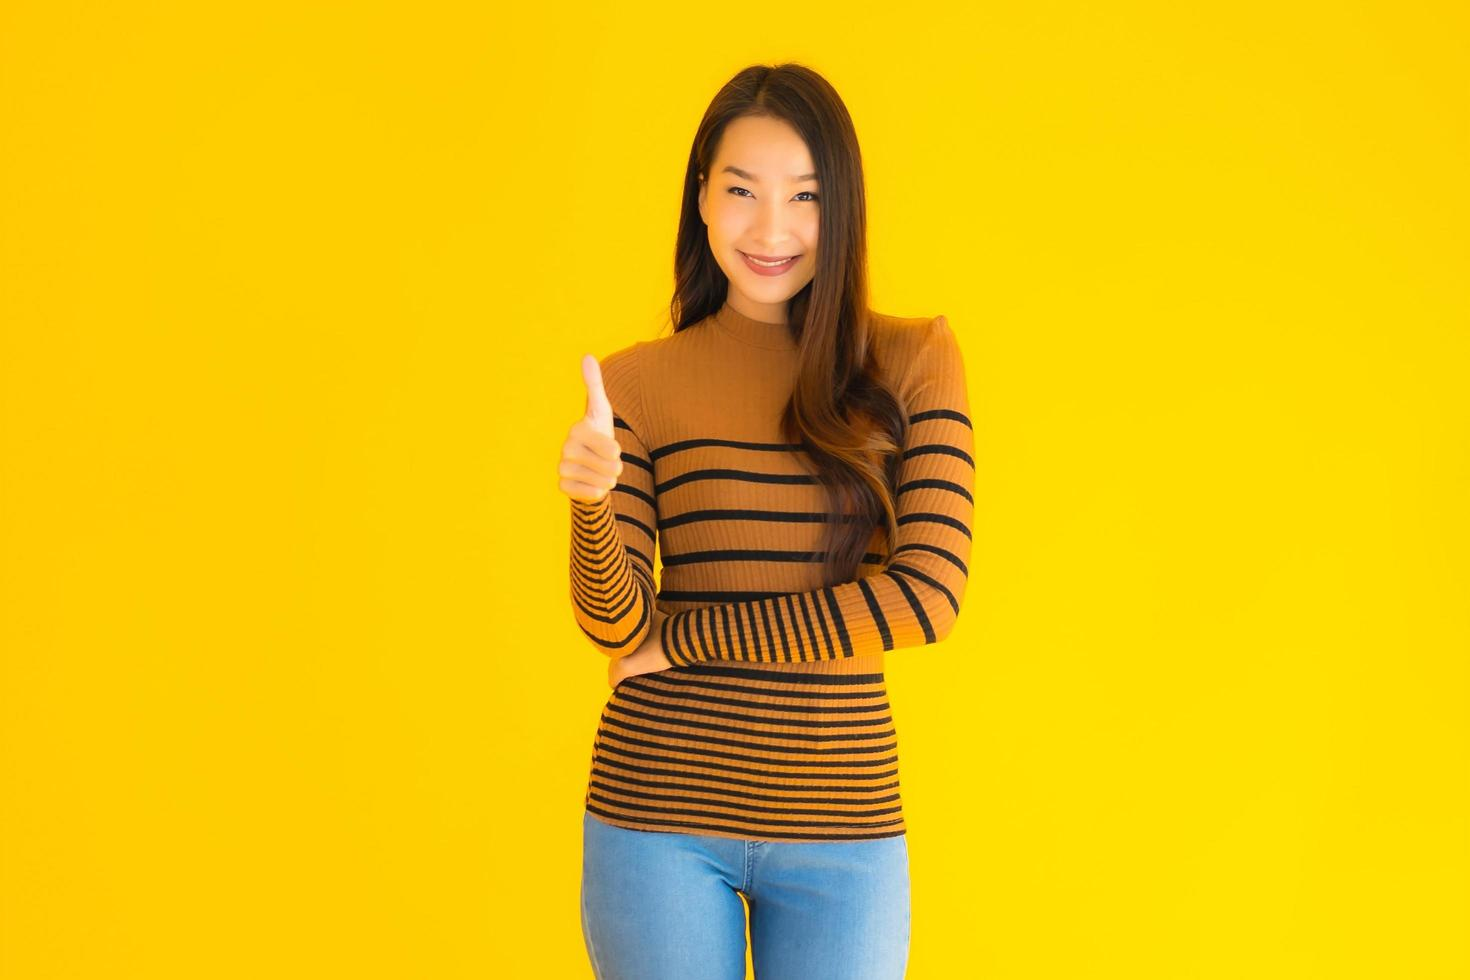 Asian woman gives thumbs up  in front of yellow background photo